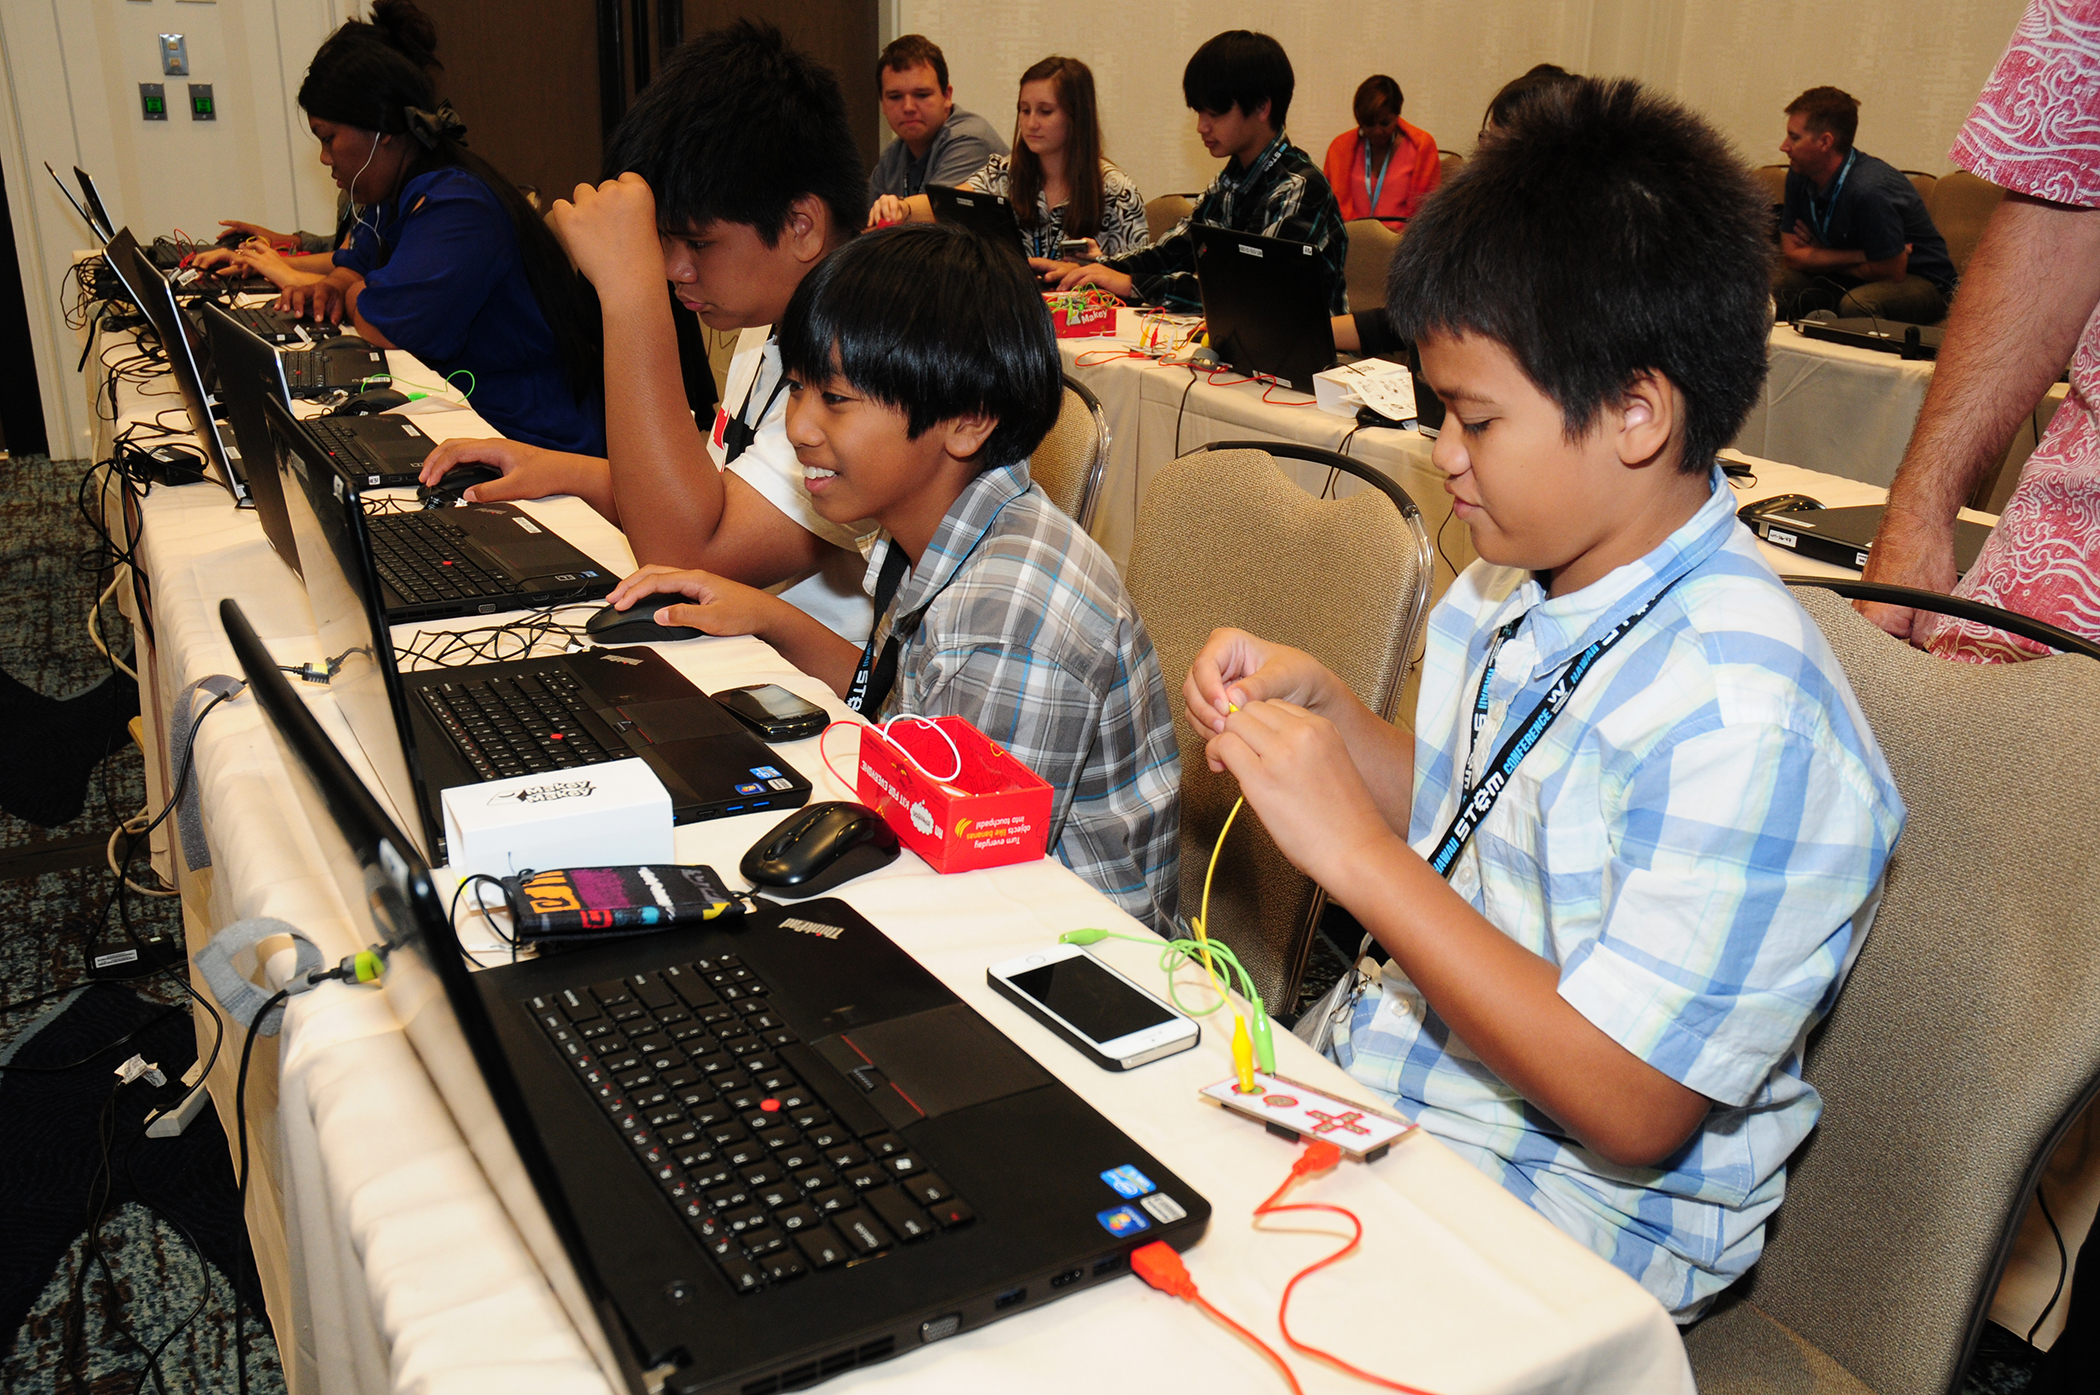 Winners all at the 7th Annual Hawaii STEM Conference